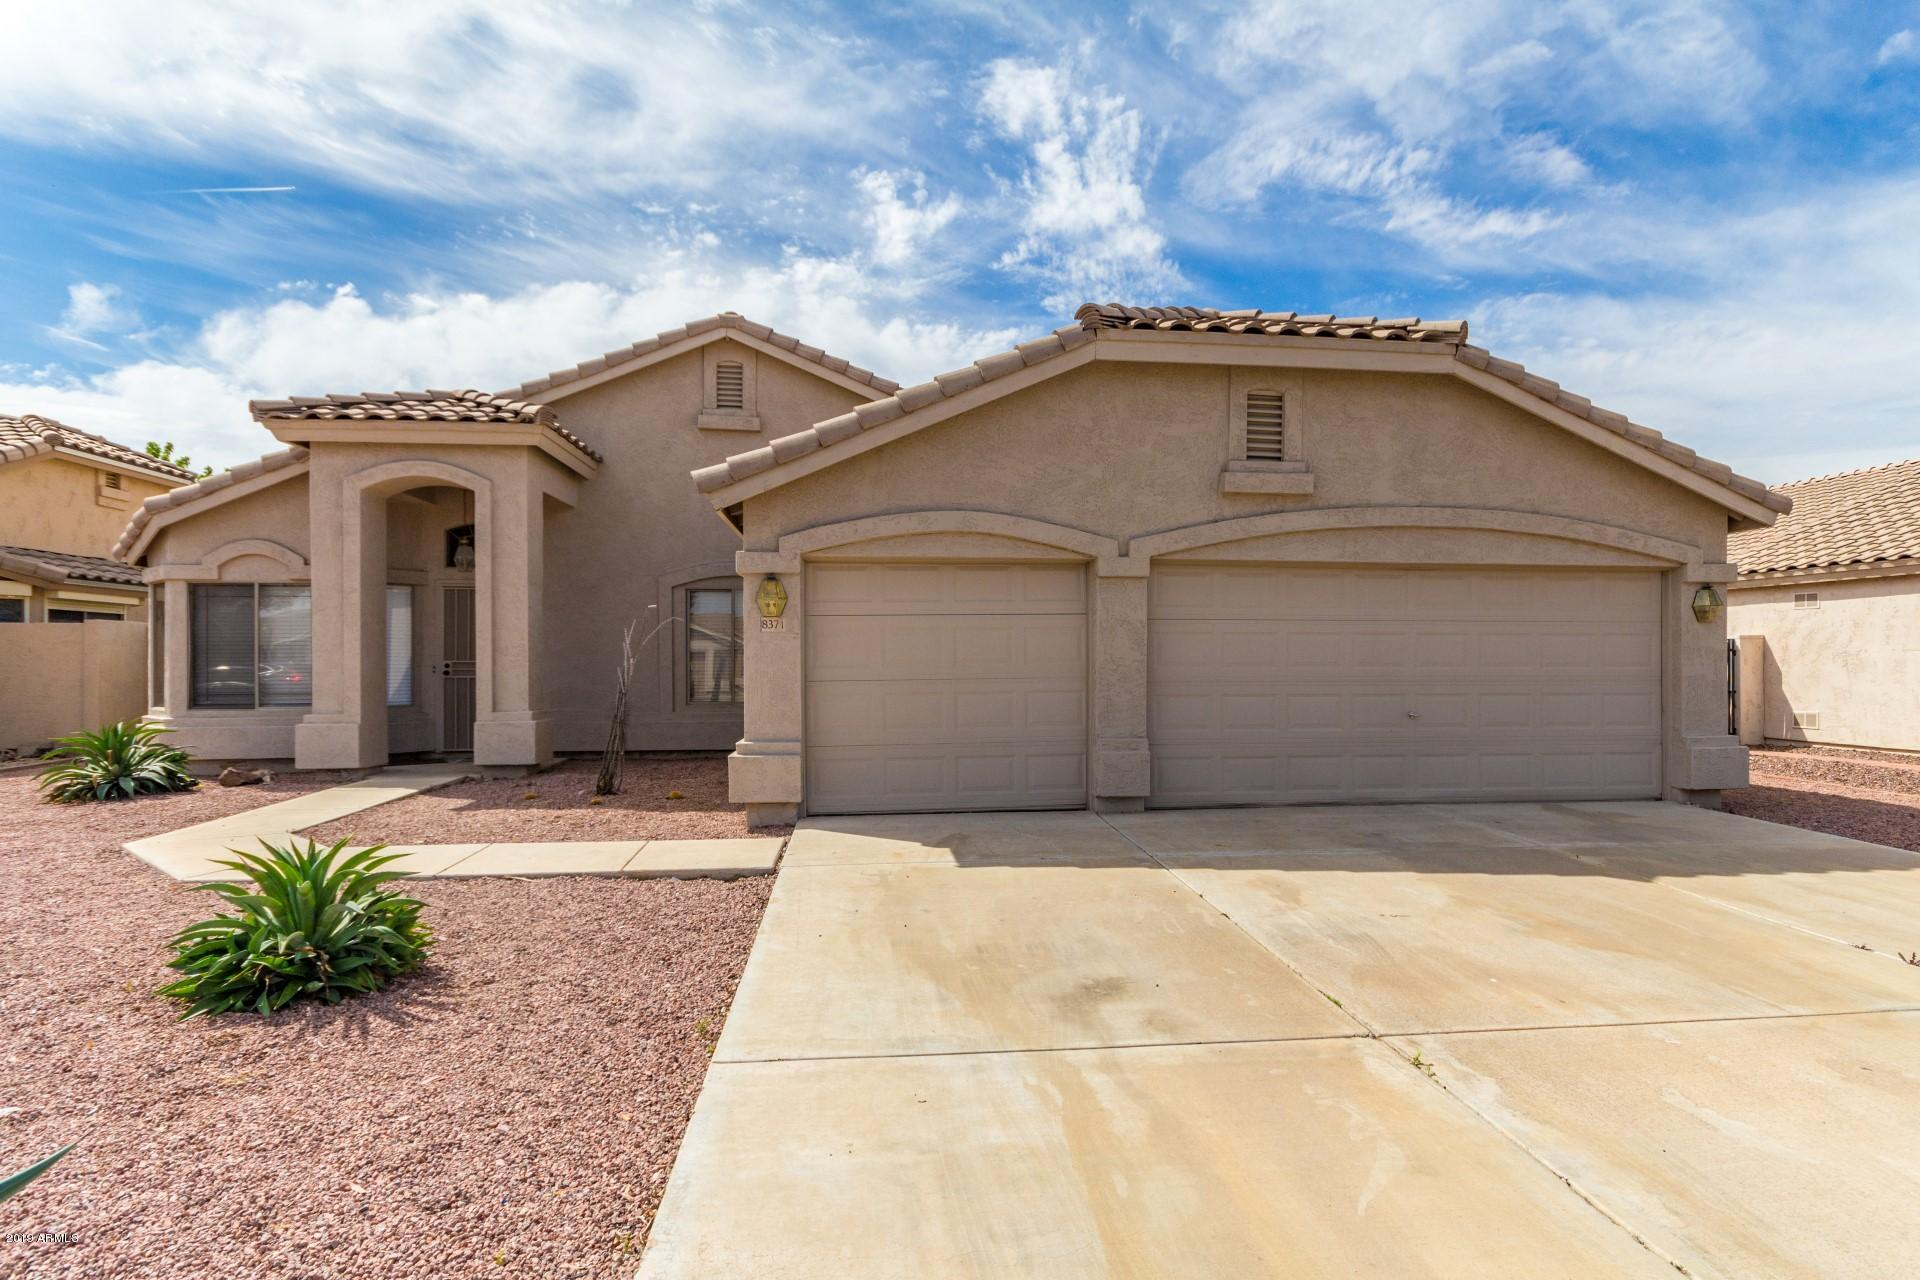 Homes For Sale With 3 Car Garages In Glendale Arizona Phoenix